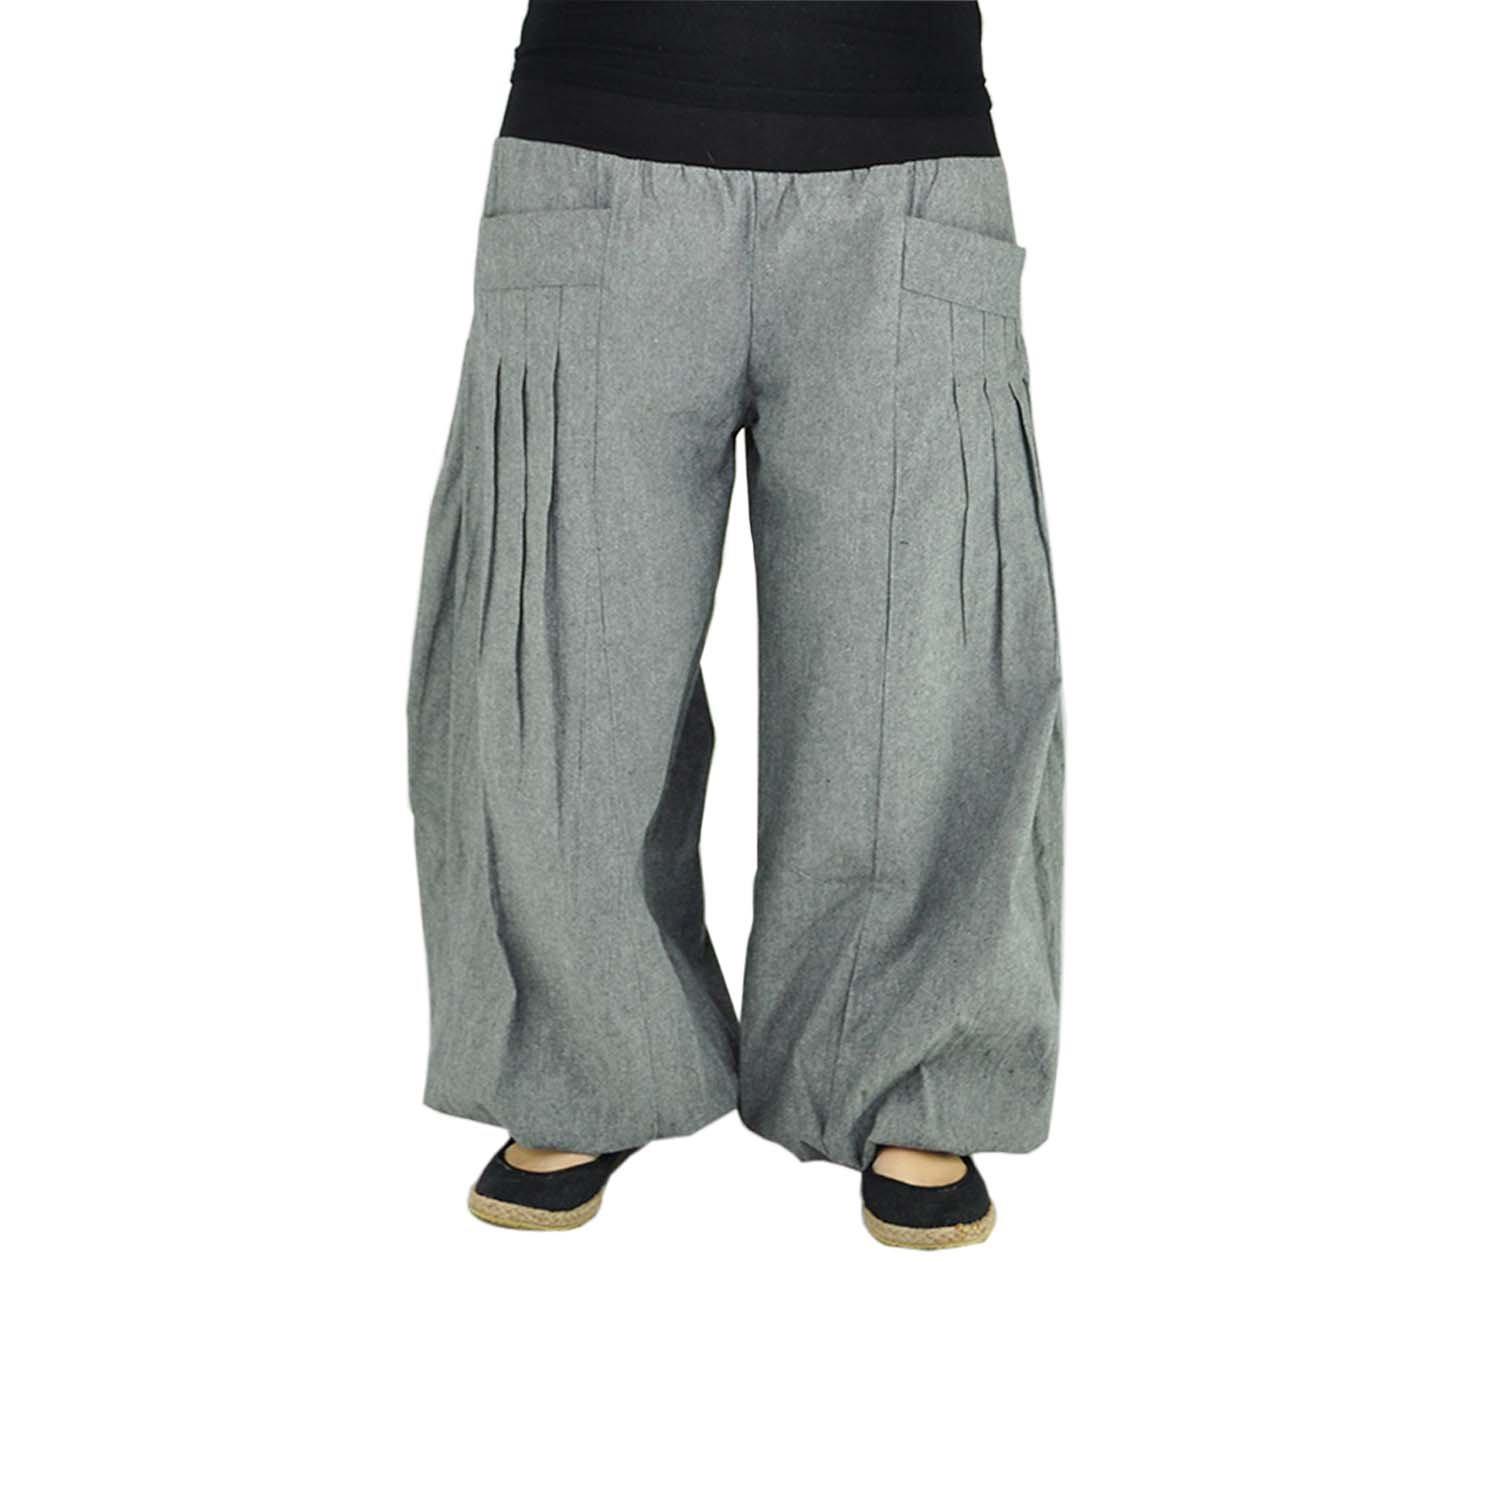 839911eeeba37 virblatt Wide Leg Pants Womens Yoga Pants as Alternative Clothing (Sizes  S-L) yogazeit